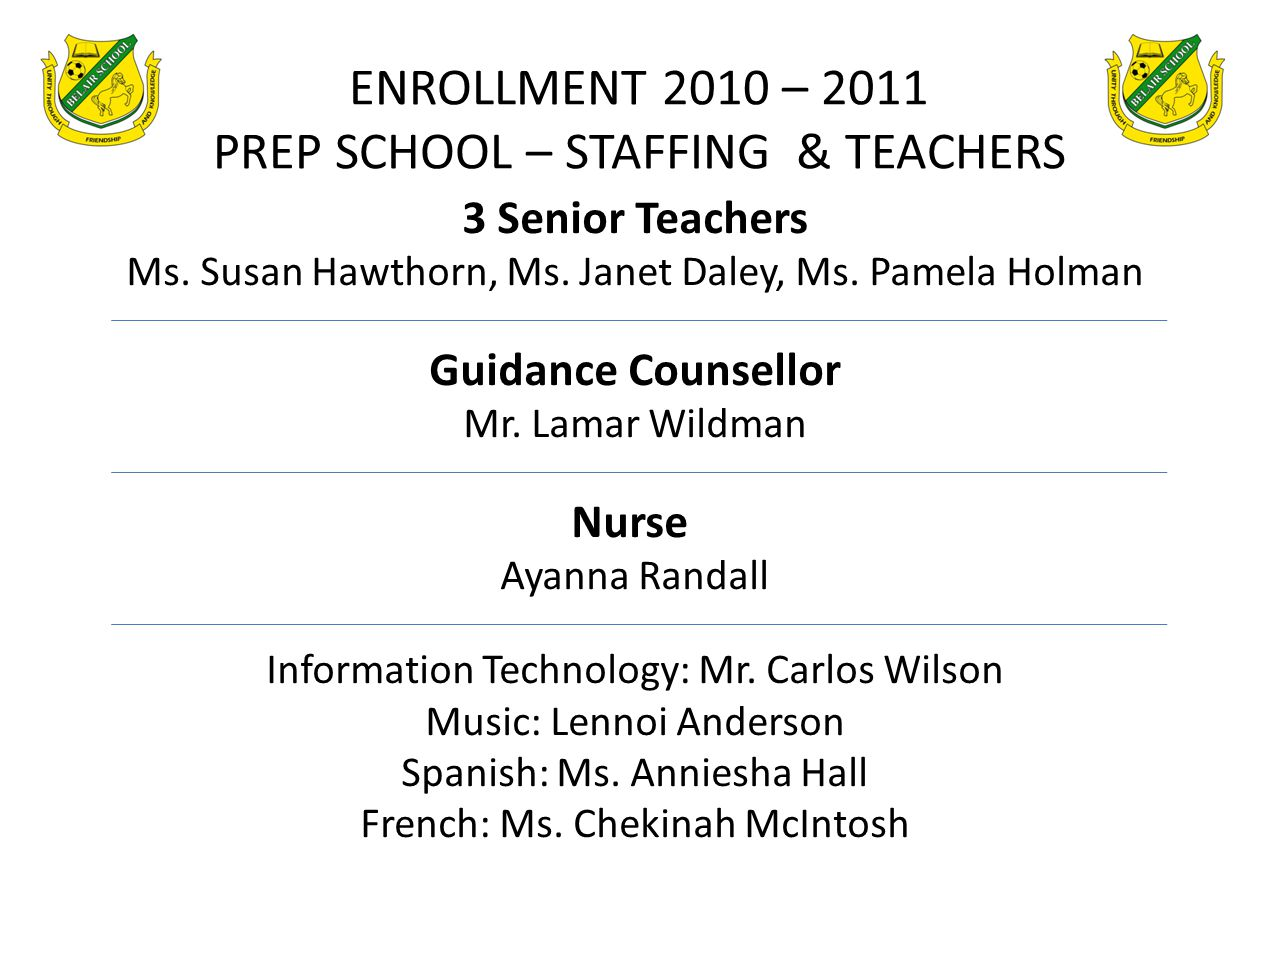 ENROLLMENT 2010 – 2011 PREP SCHOOL – STAFFING & TEACHERS